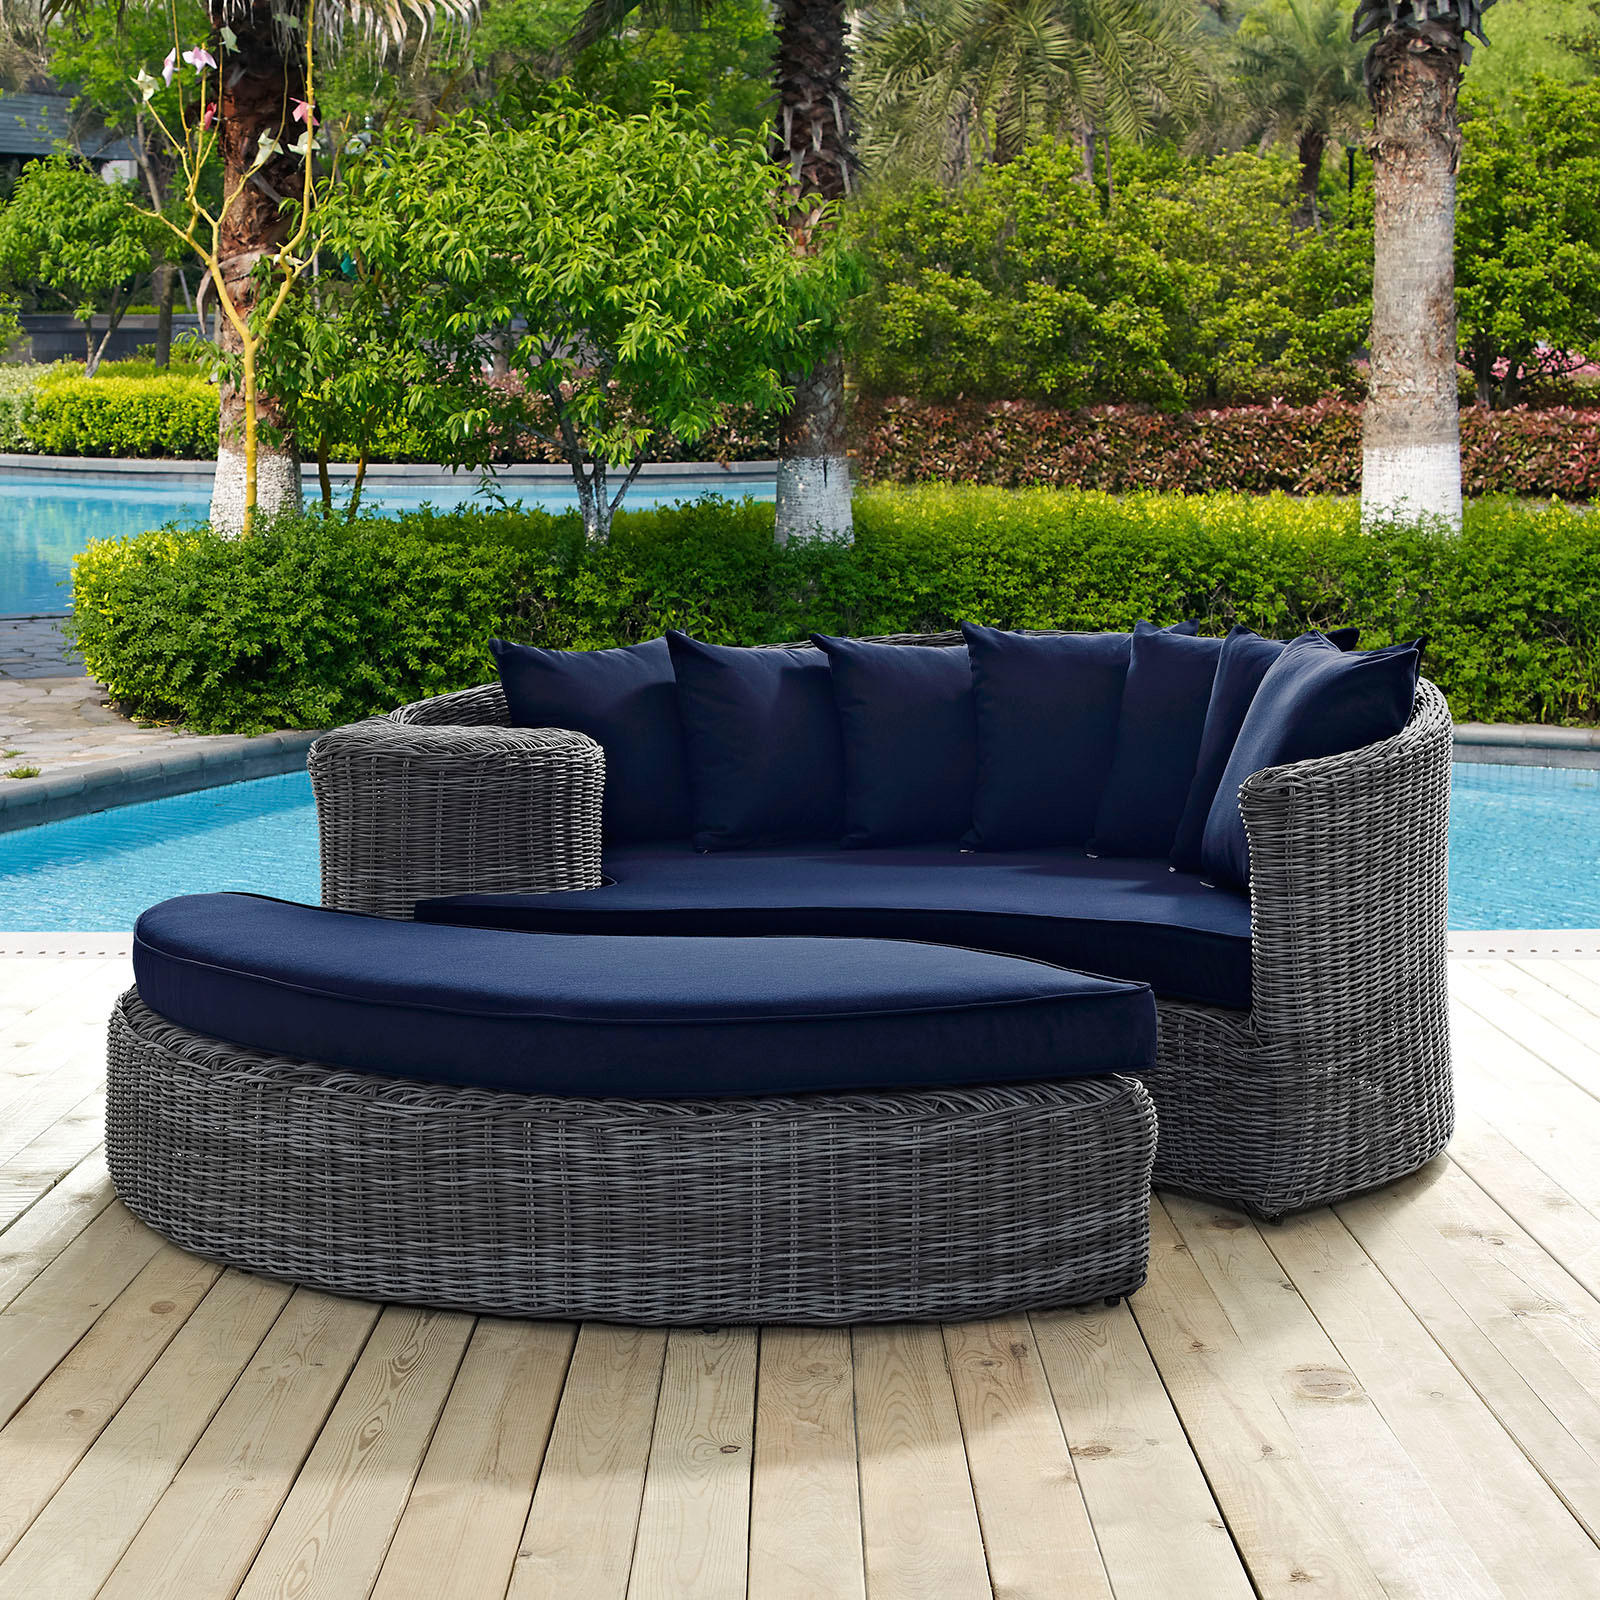 Modway Summon Wicker 2 Piece Outdoor Daybed Set Outdoor